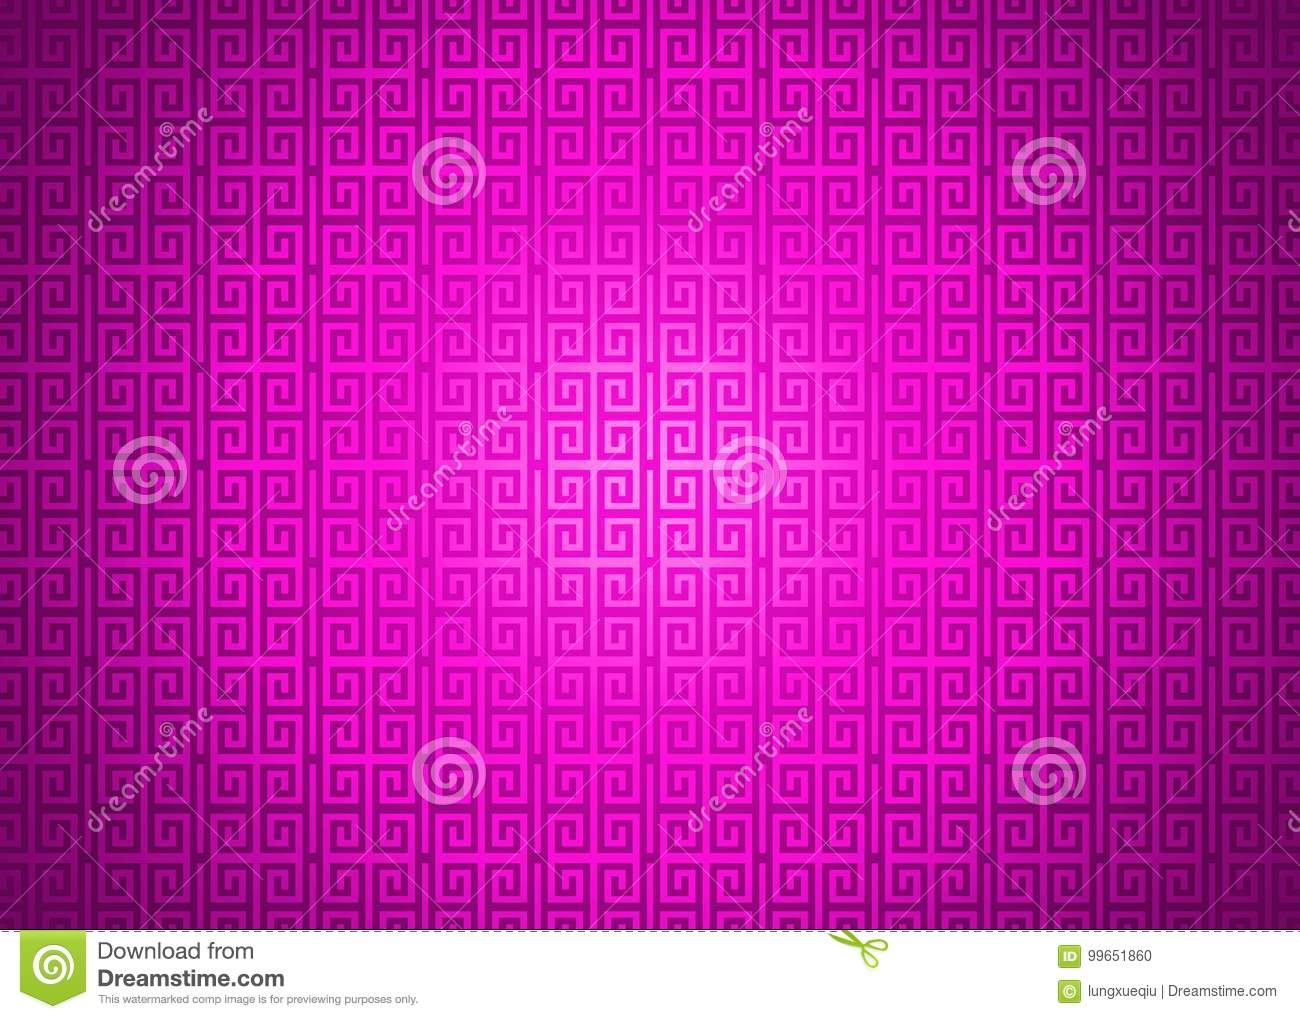 Dark Purple Oriental Ornamental Chinese Arabic Islamic Pattern Texture Background Imlek Ramadan Festival Wallpaper